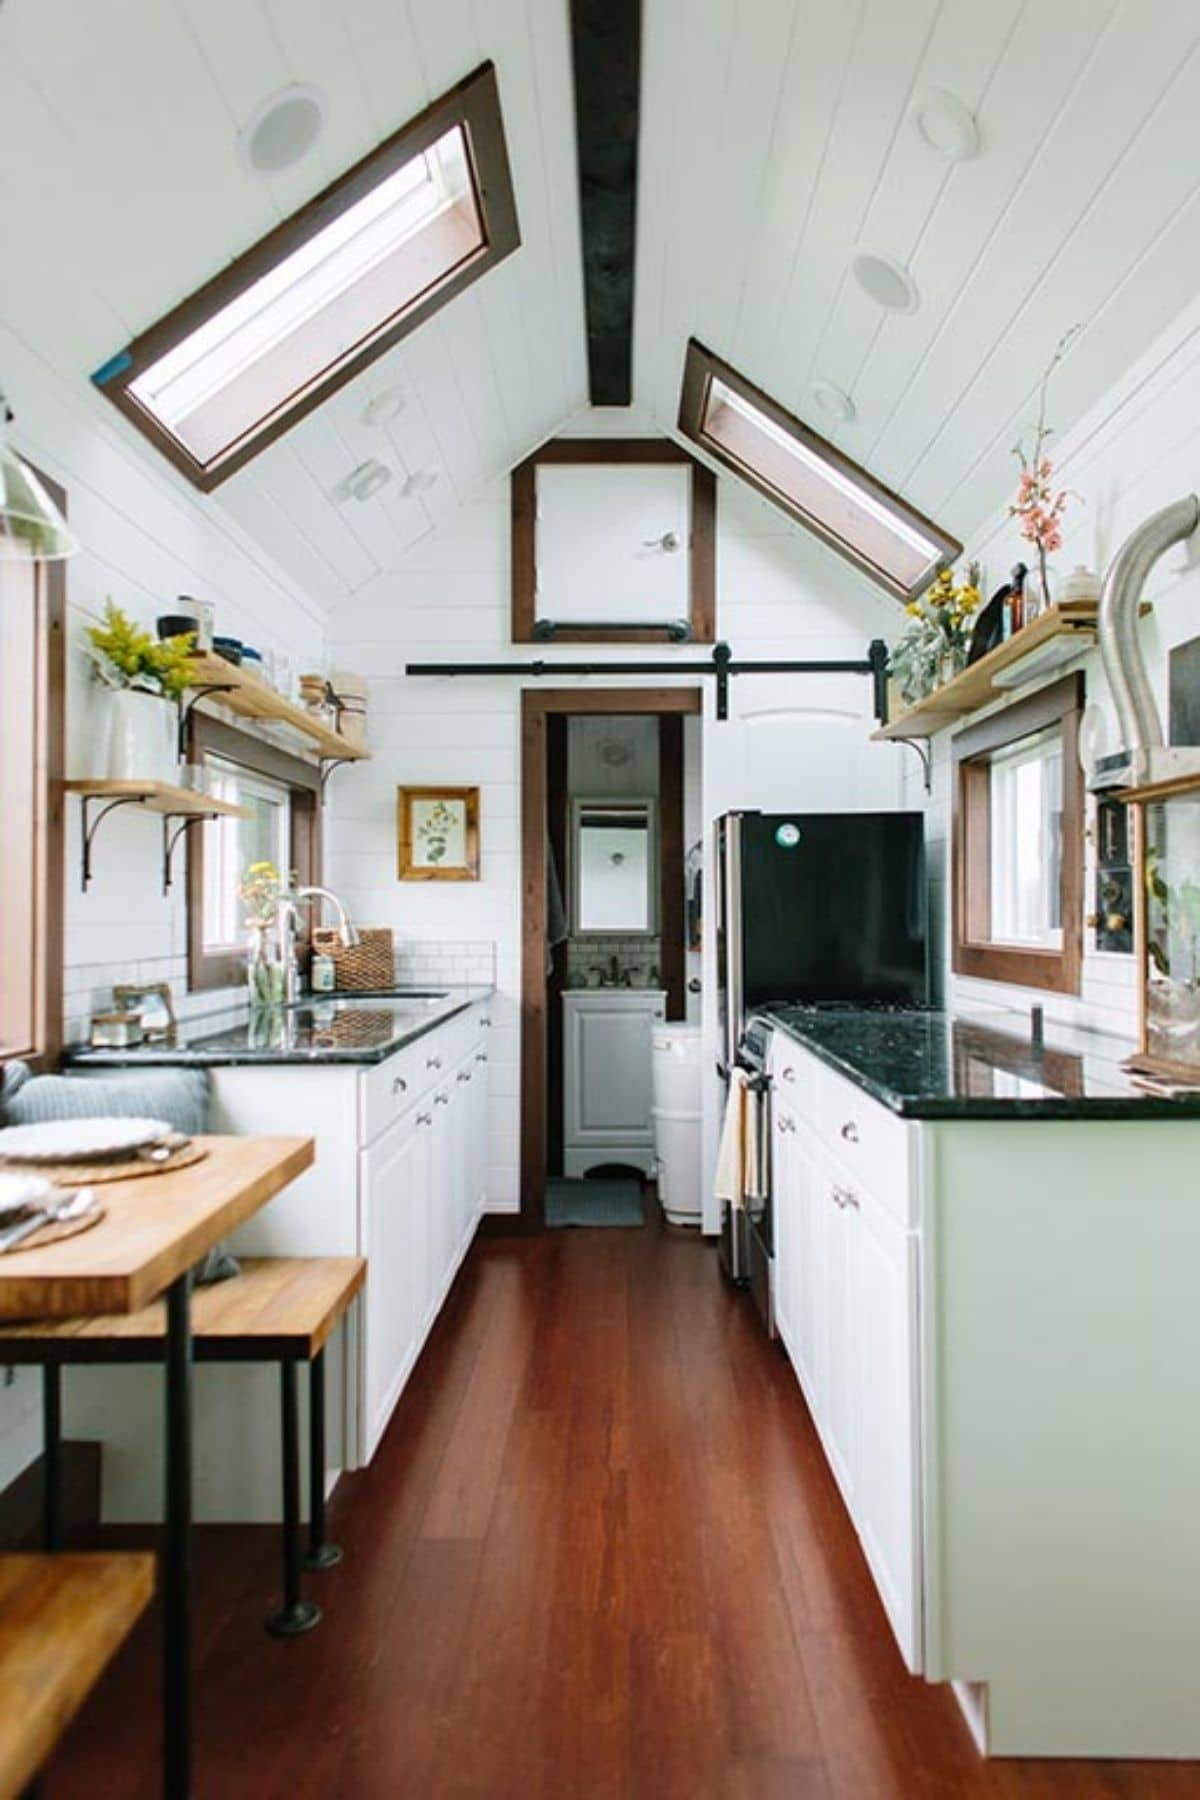 View into bathroom of tiny house